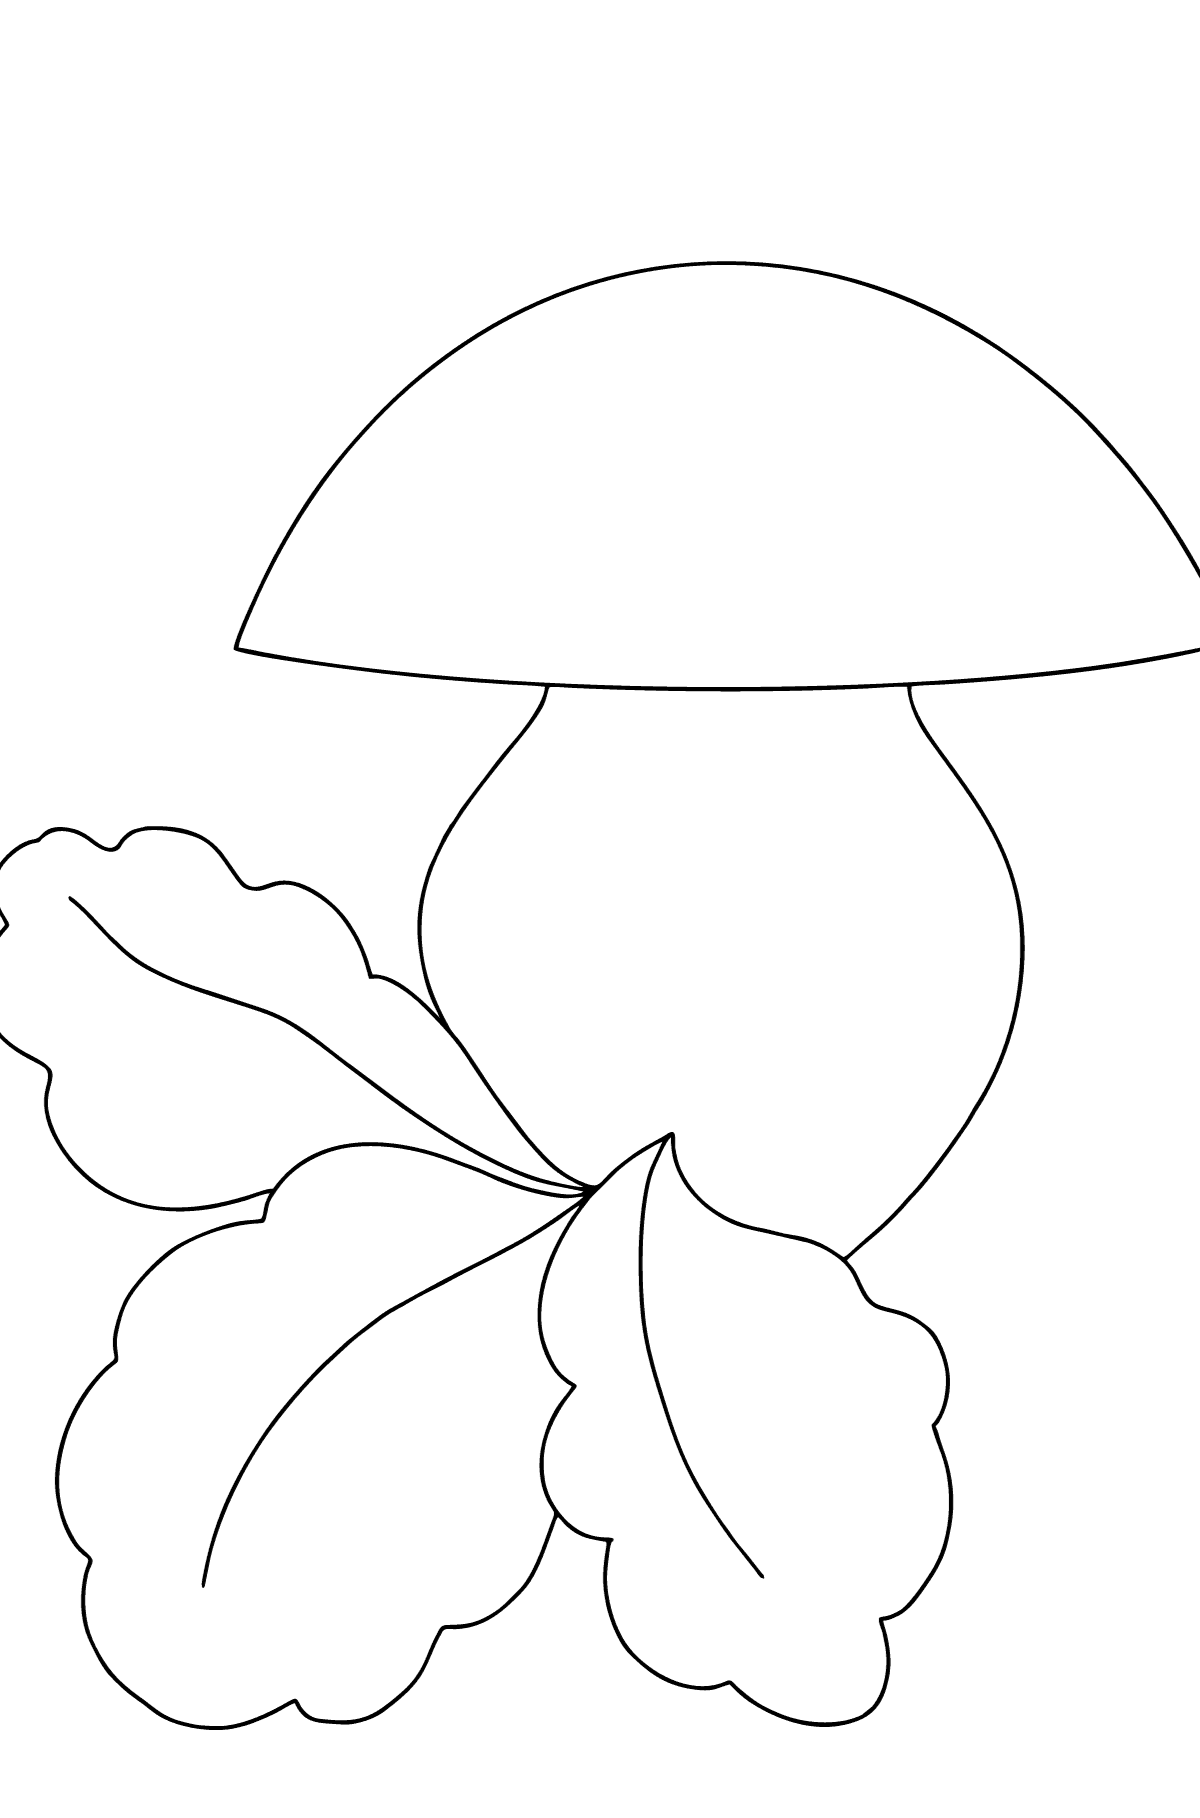 Autumn Coloring Page - Mushroom Season for Kids